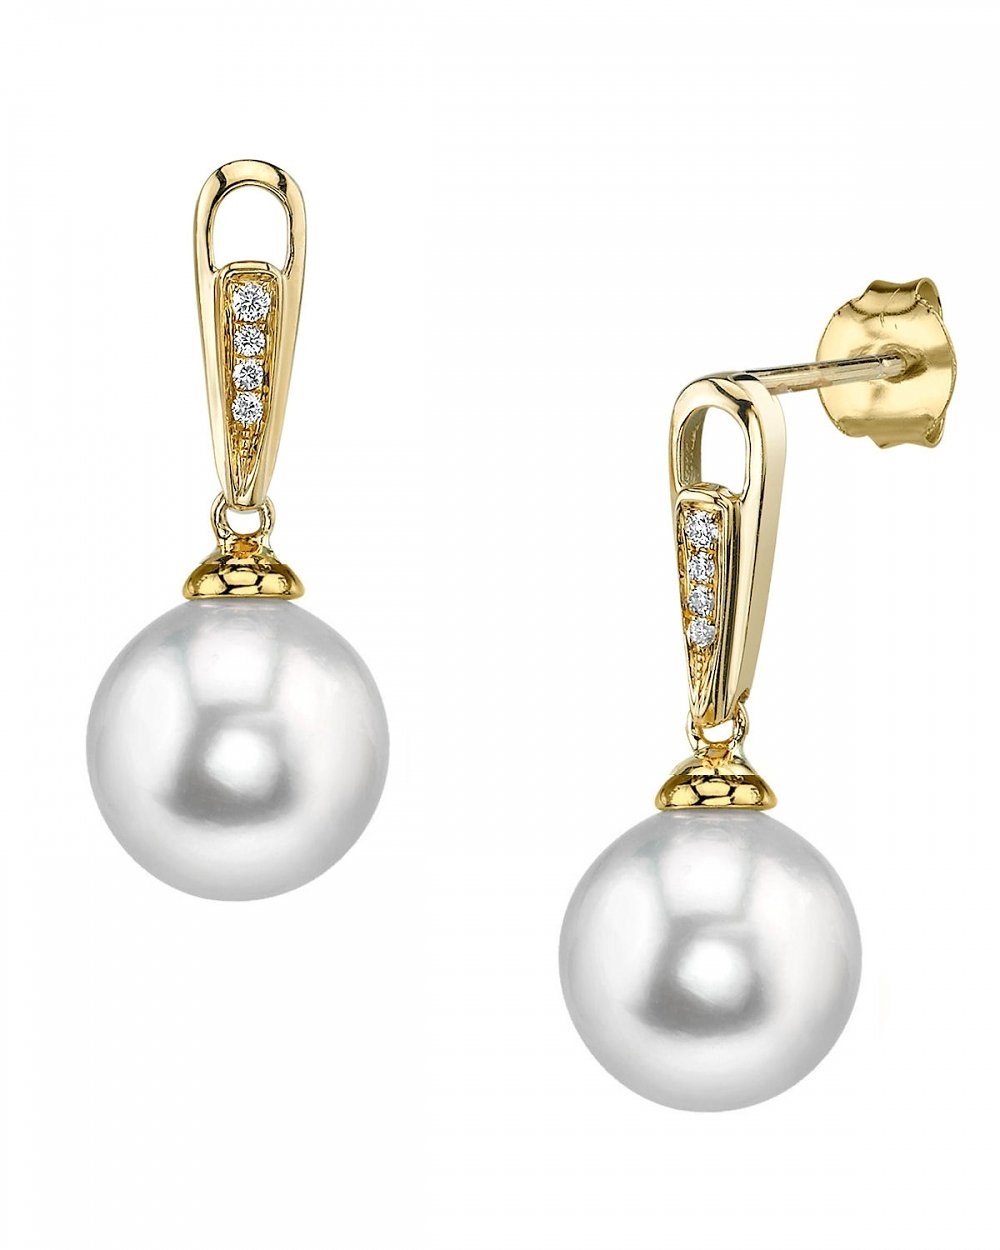 14K Gold 10mm White South Sea Cultured Pearl & Diamond Bailey Earrings